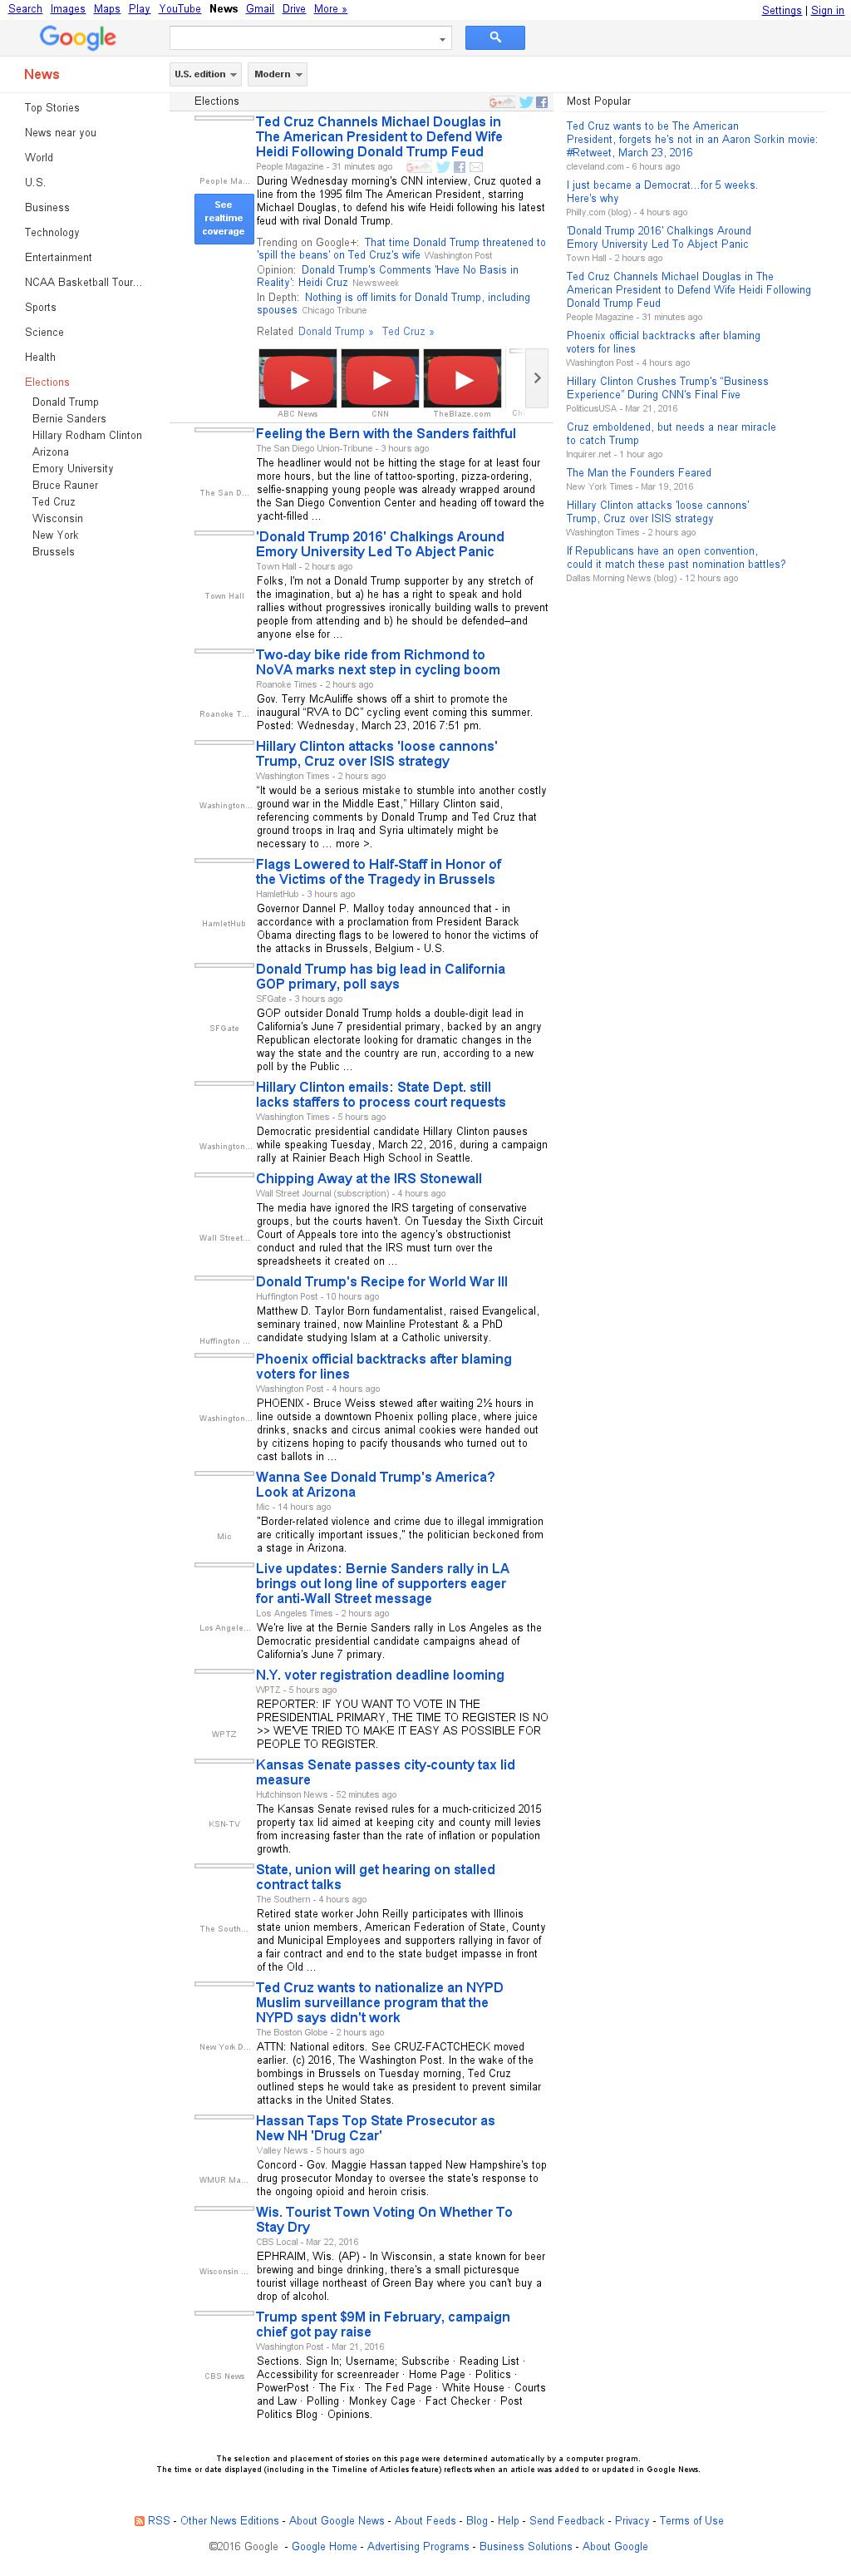 Google News: Elections at Thursday March 24, 2016, 4:06 a.m. UTC